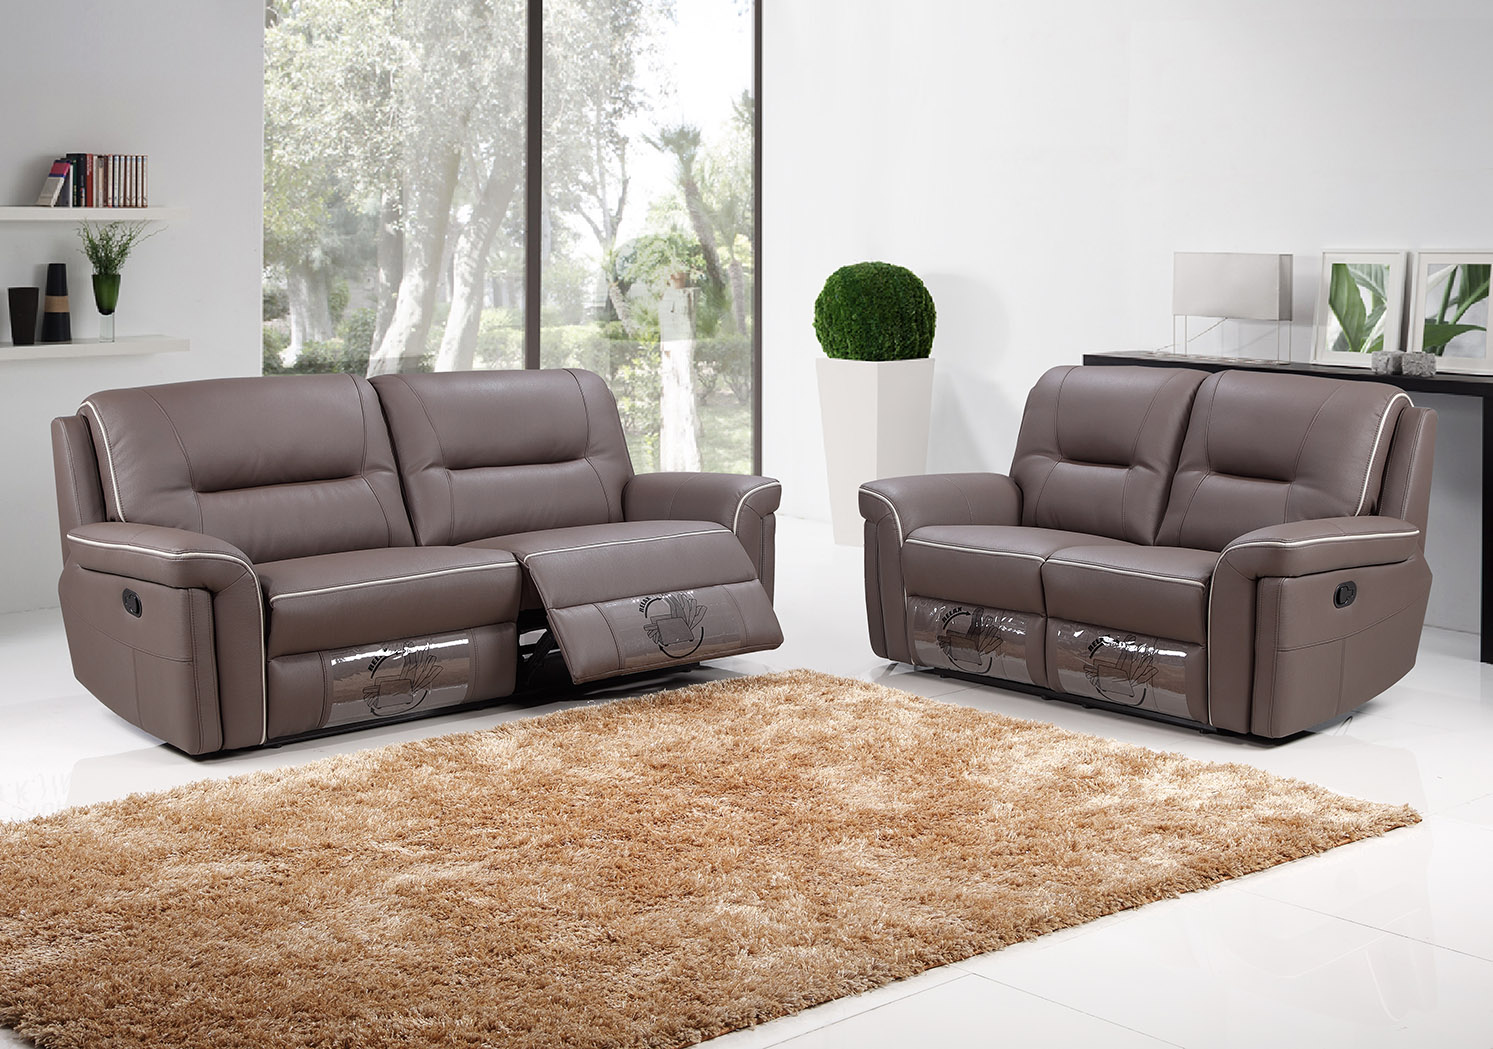 3rr2rr F9203 Modern Recliner Lounges Suite Fortune